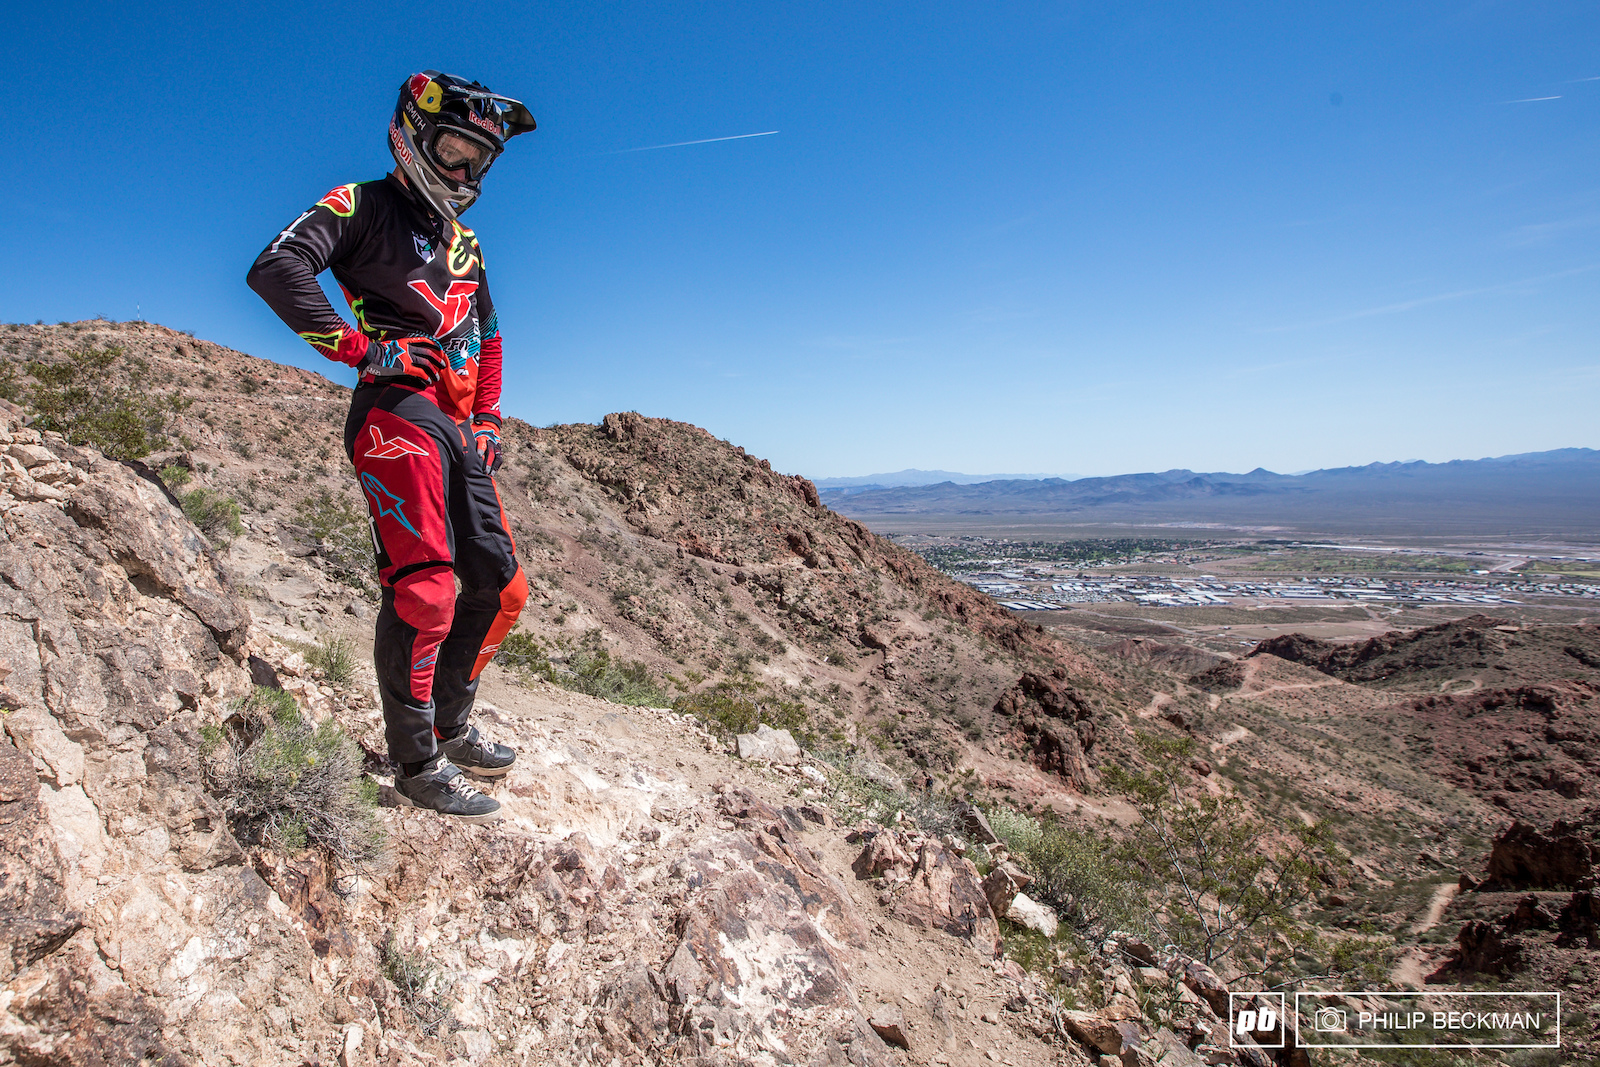 World Cup champ Aaron Gwin YT Industries surveys the top of the trail. Even though he rode his first downhill bike here and has made regular appearances over the years he had not yet ridden this section of Armageddon.